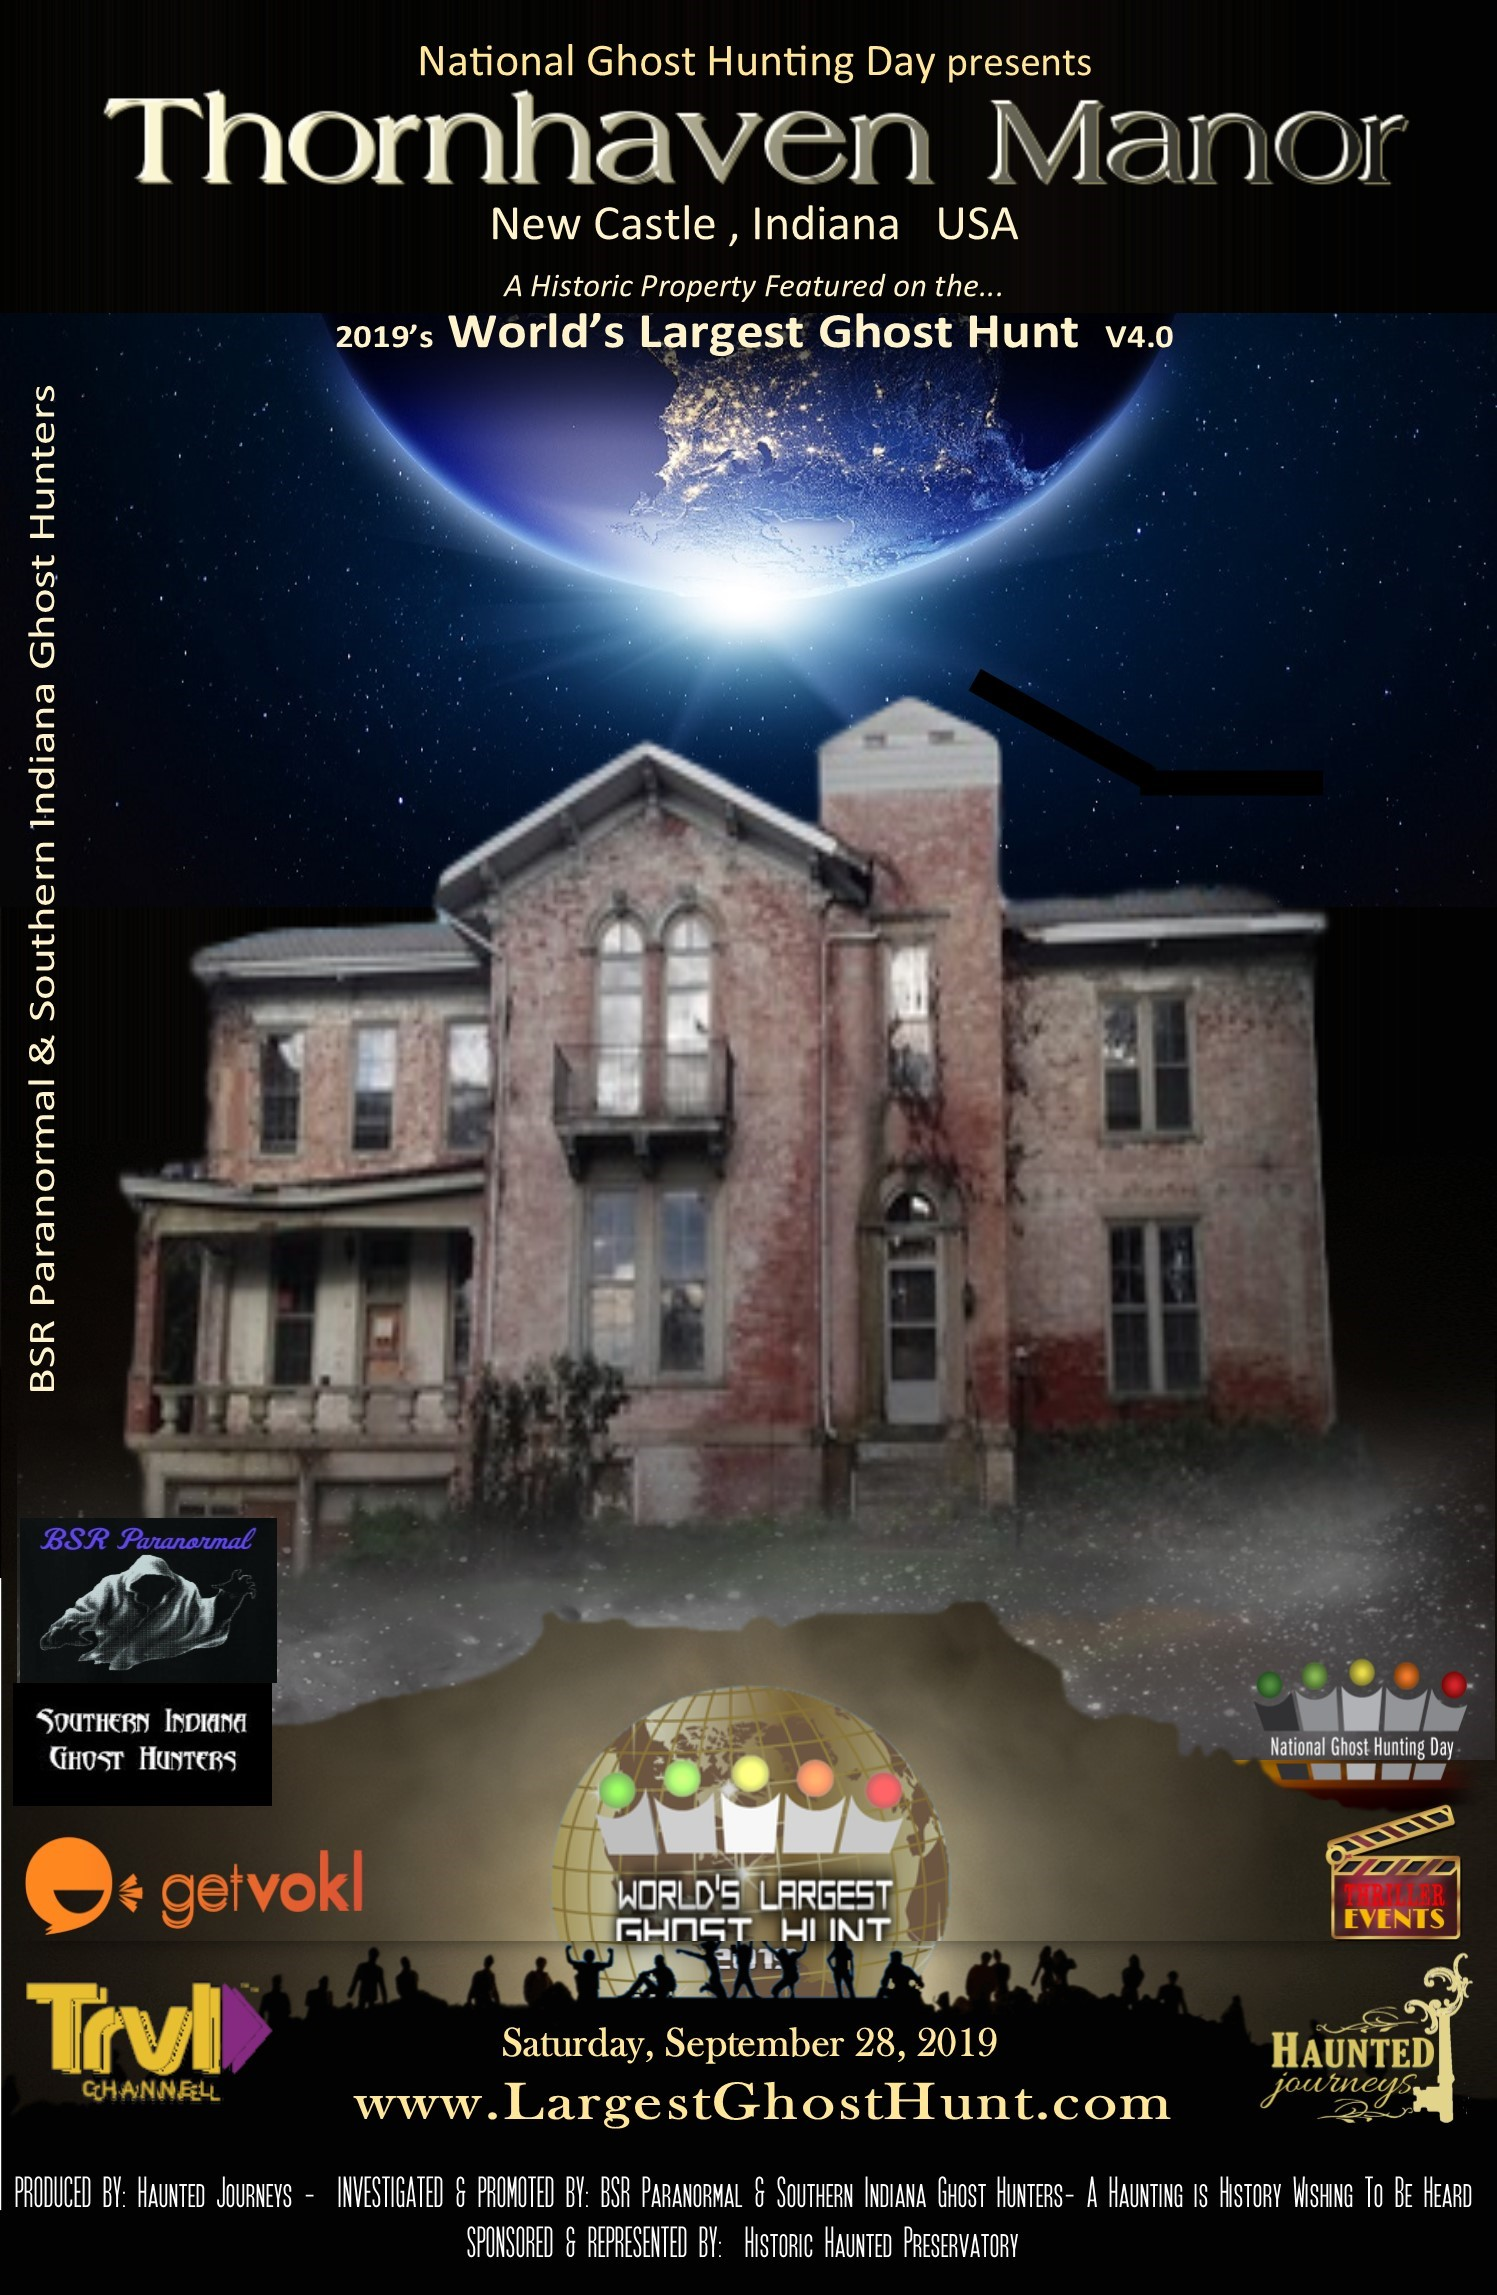 World's Largest Ghost Hunt at Thornhaven Manor - Buy tickets